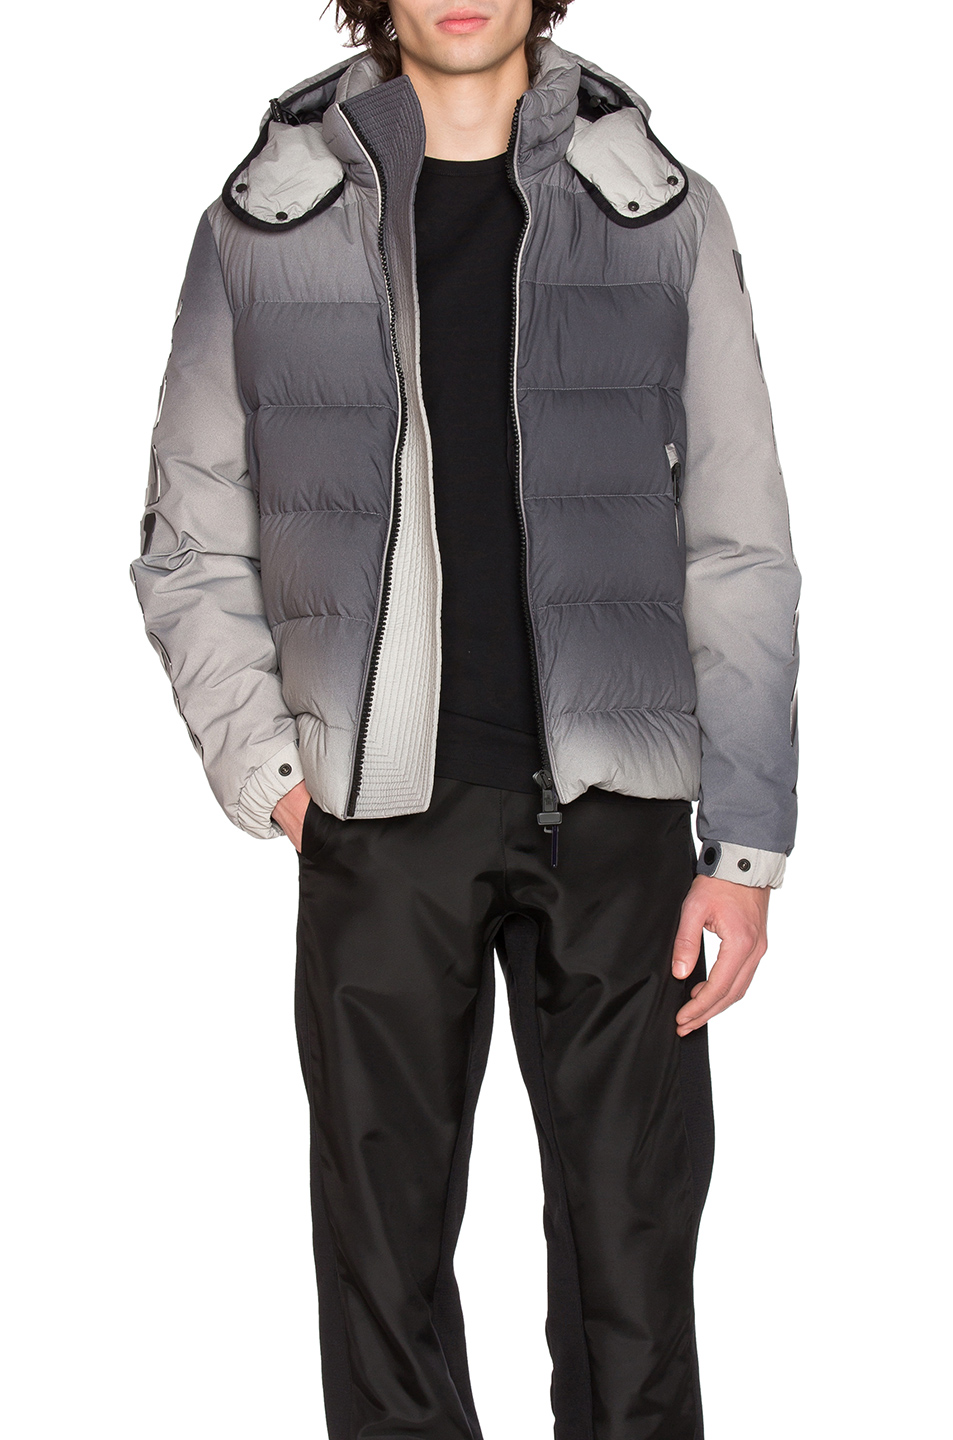 Moncler x Off White Enclos Jacket in Gray,Ombre & Tie Dye